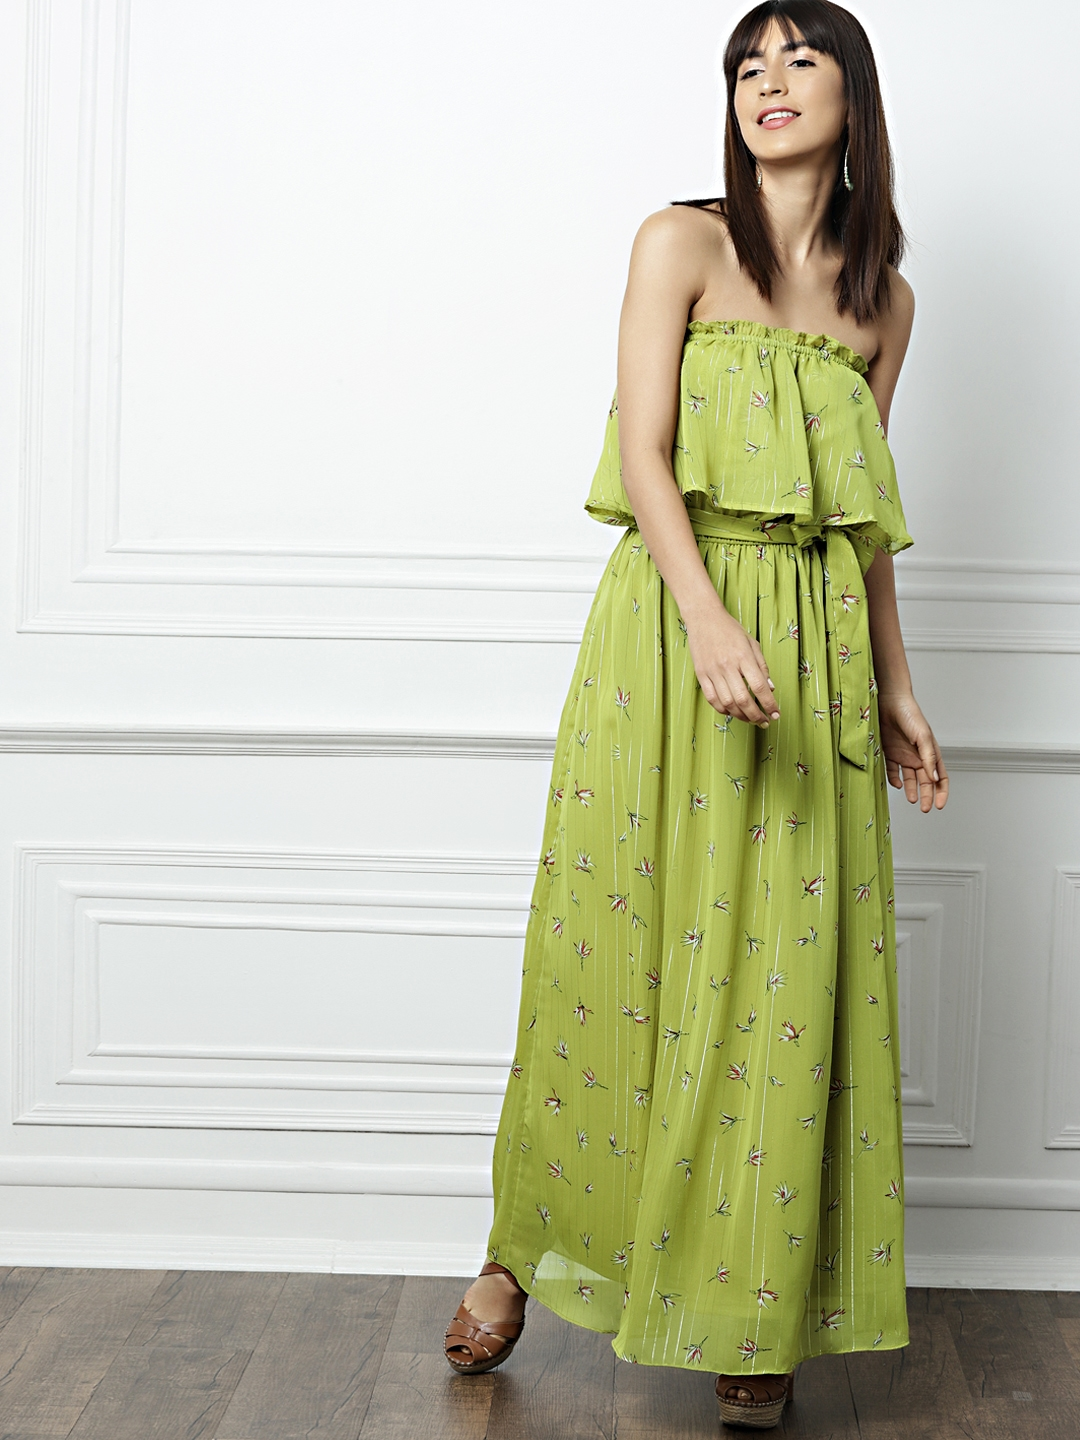 42805956c655 Buy All About You Women Green Printed Off Shoulder Maxi Dress ...